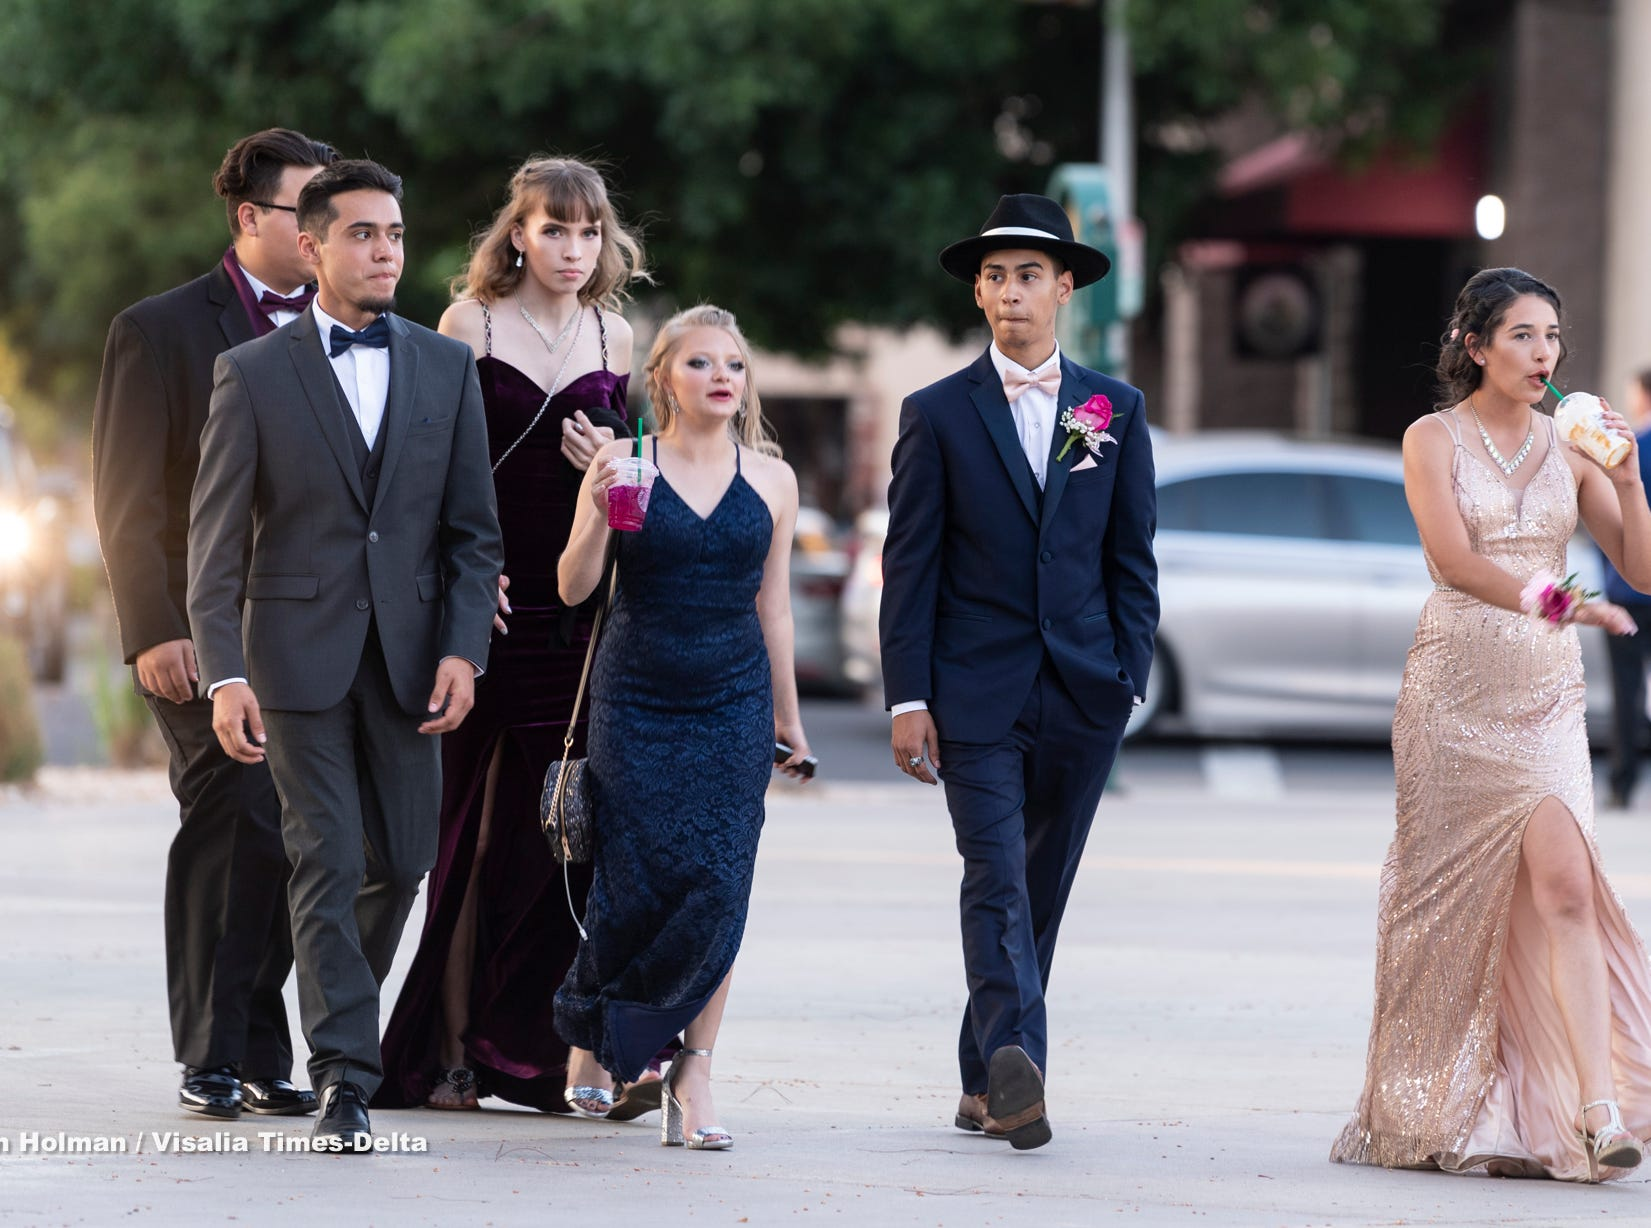 Visalia Unified School District's High School prom on Saturday, May 11, 2019.